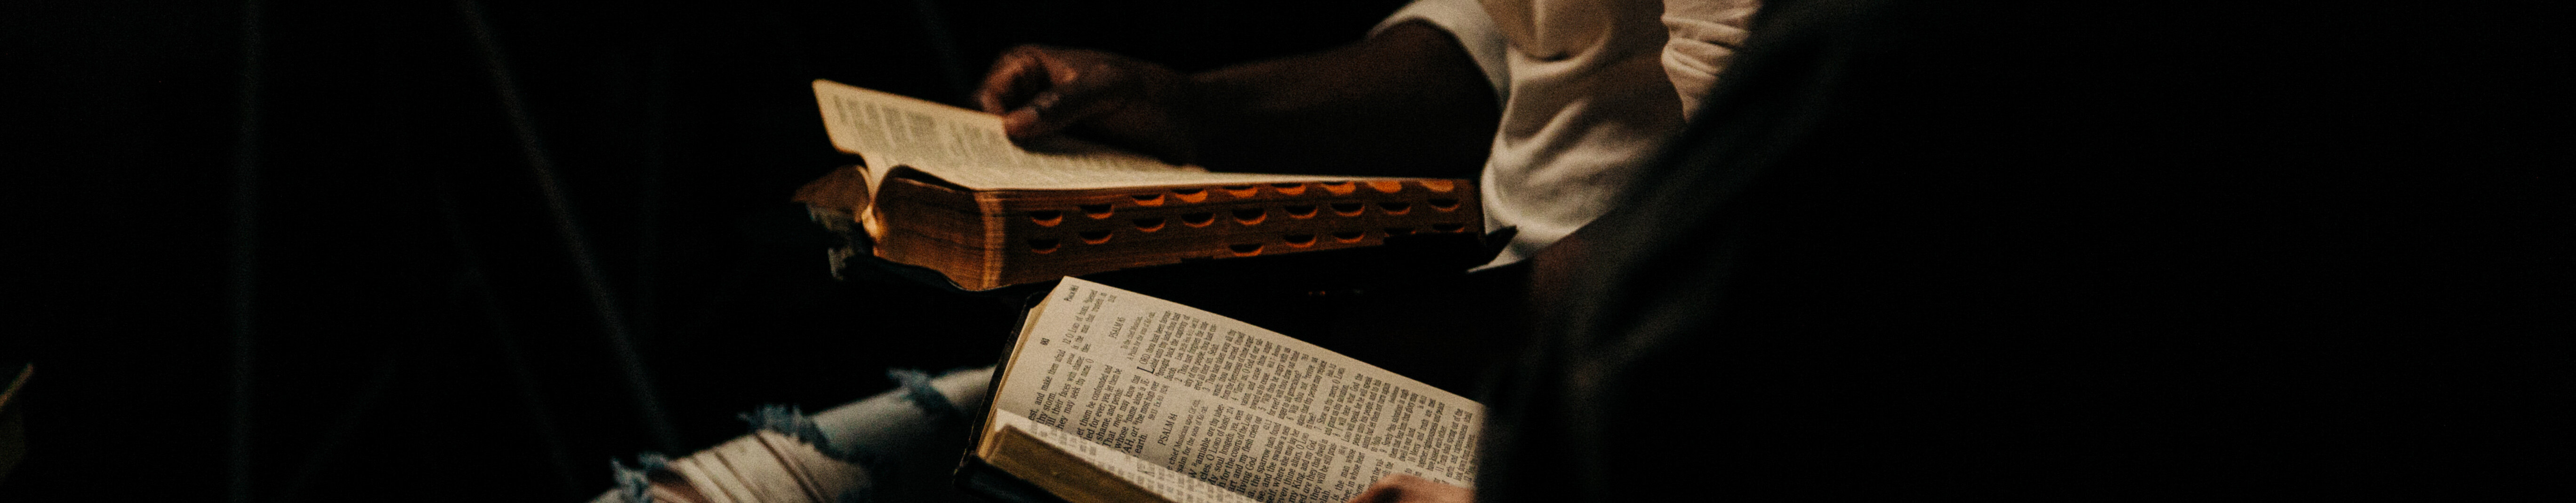 Read the New Testament: Week of March 29, 2021